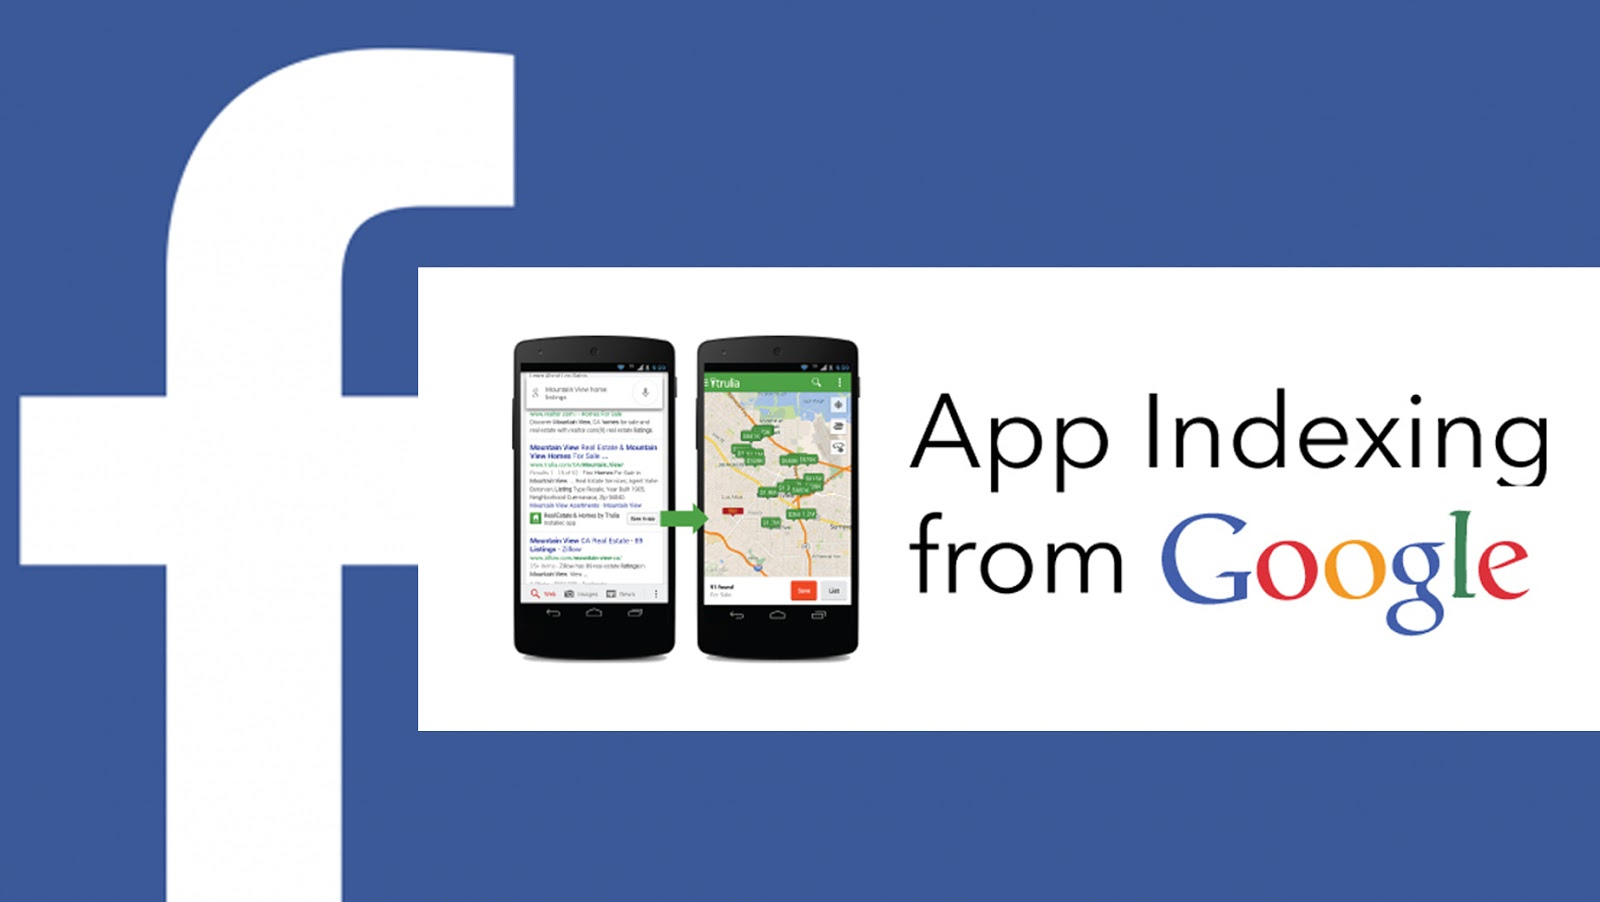 Facebook App Embraces Google App Indexing for Improving Mobile User Experience 1